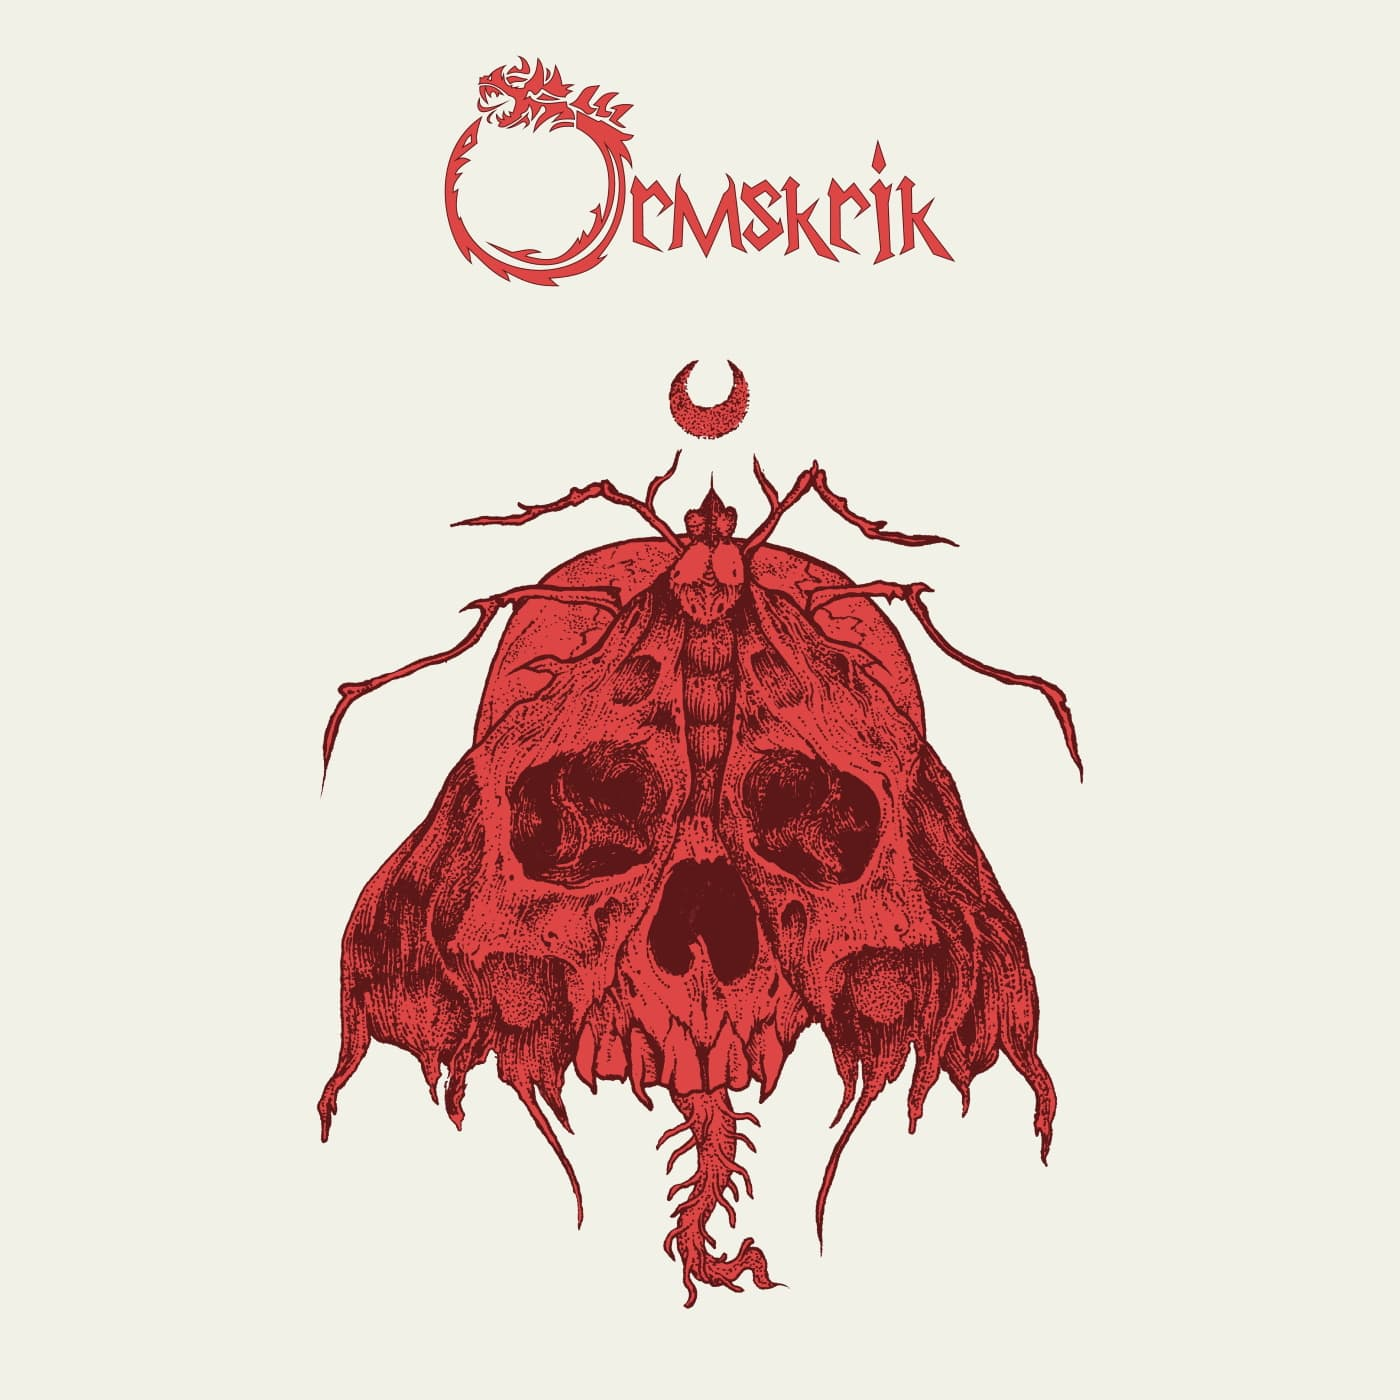 Ormskrik cover by Rotten Fantom